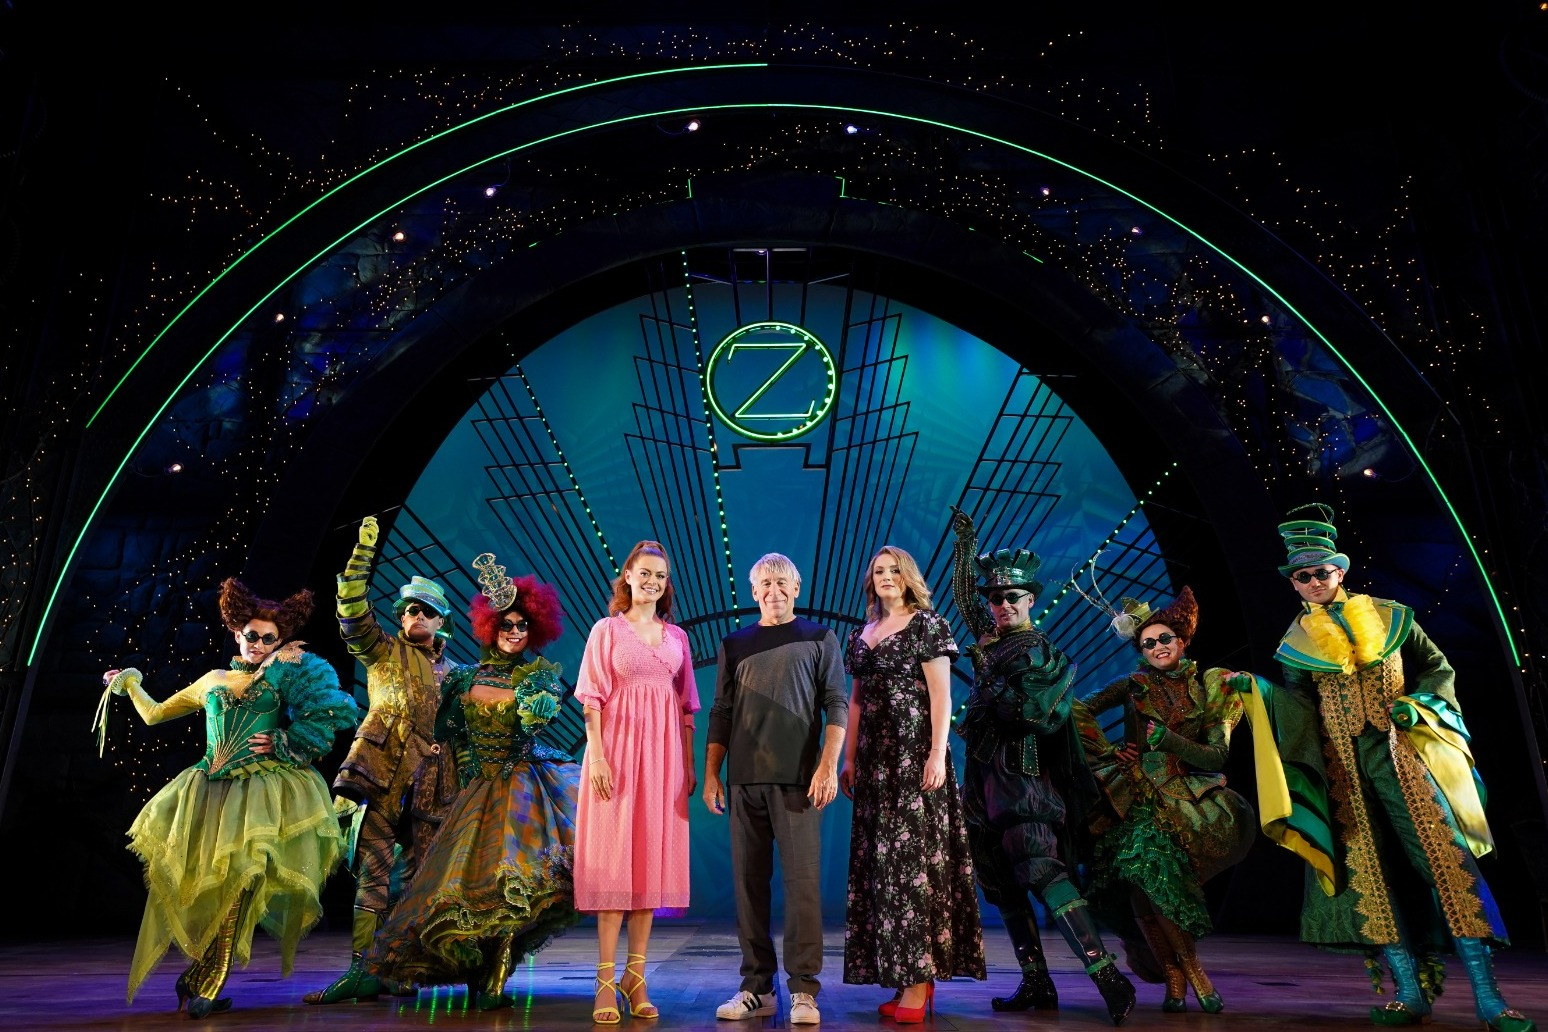 Wicked stars reflect on hit musical ahead of its 15th anniversary